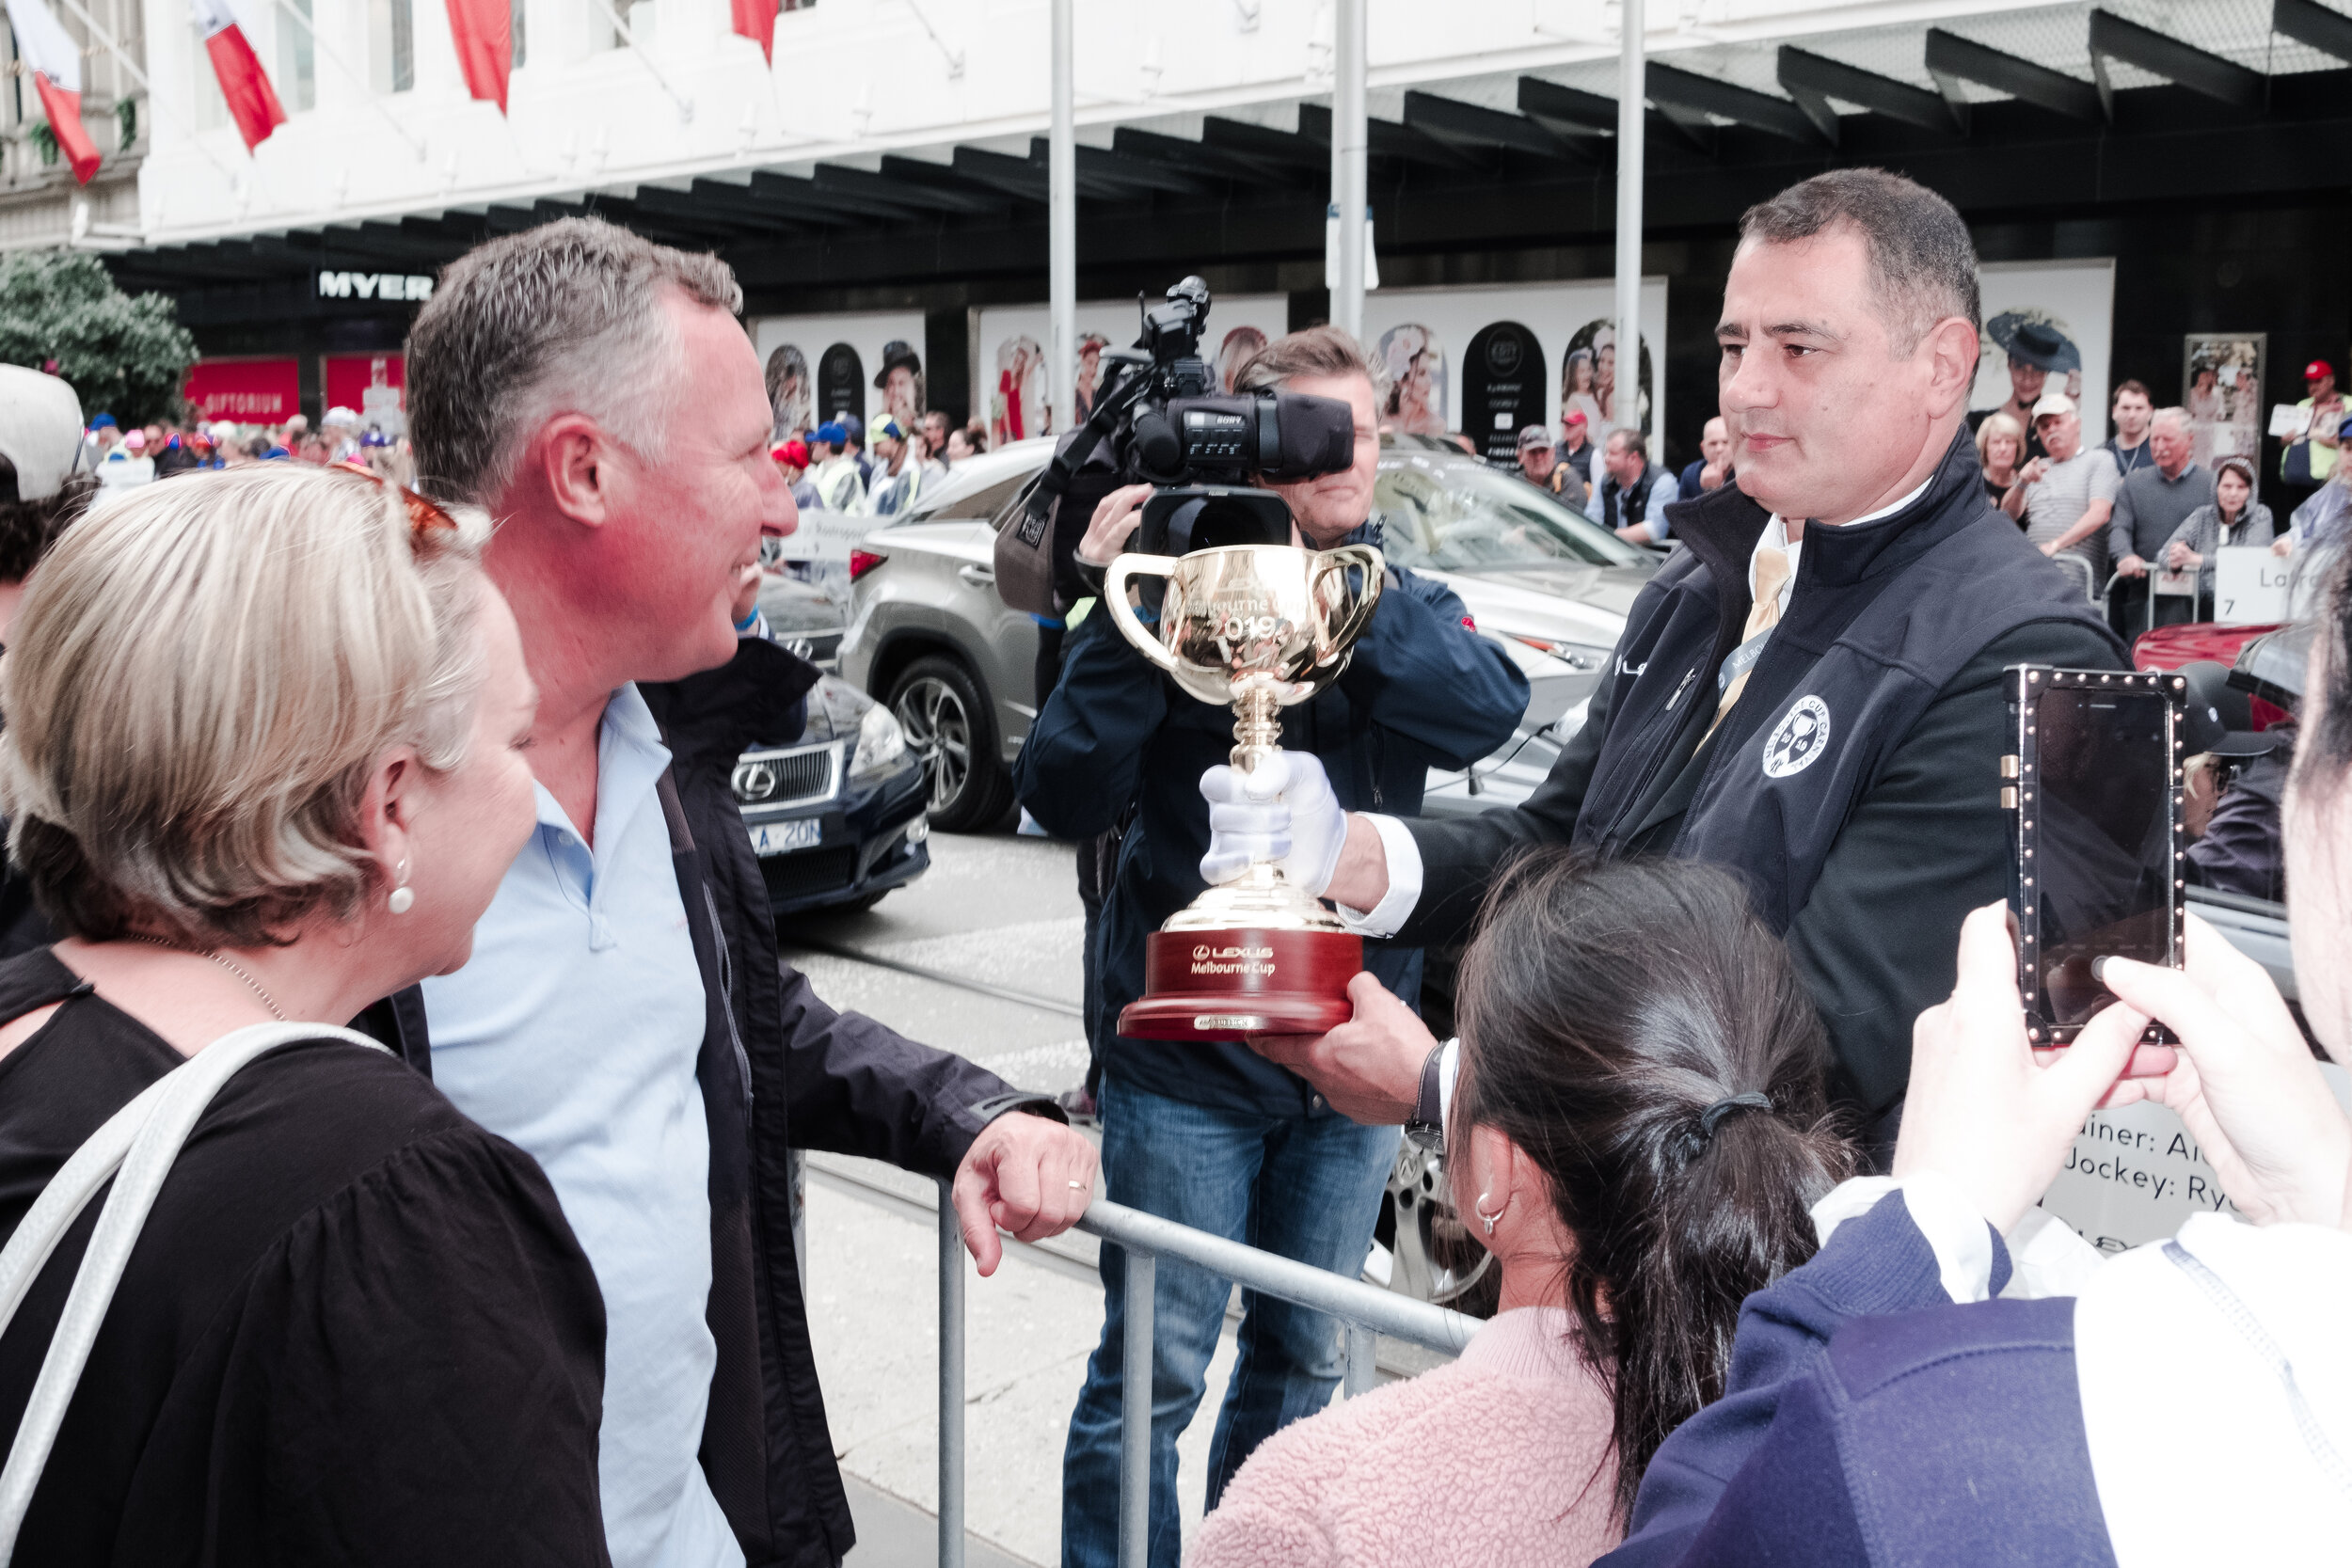 The Melbourne Cup is shown to the crowd. (Photo: Jeremy Gan)